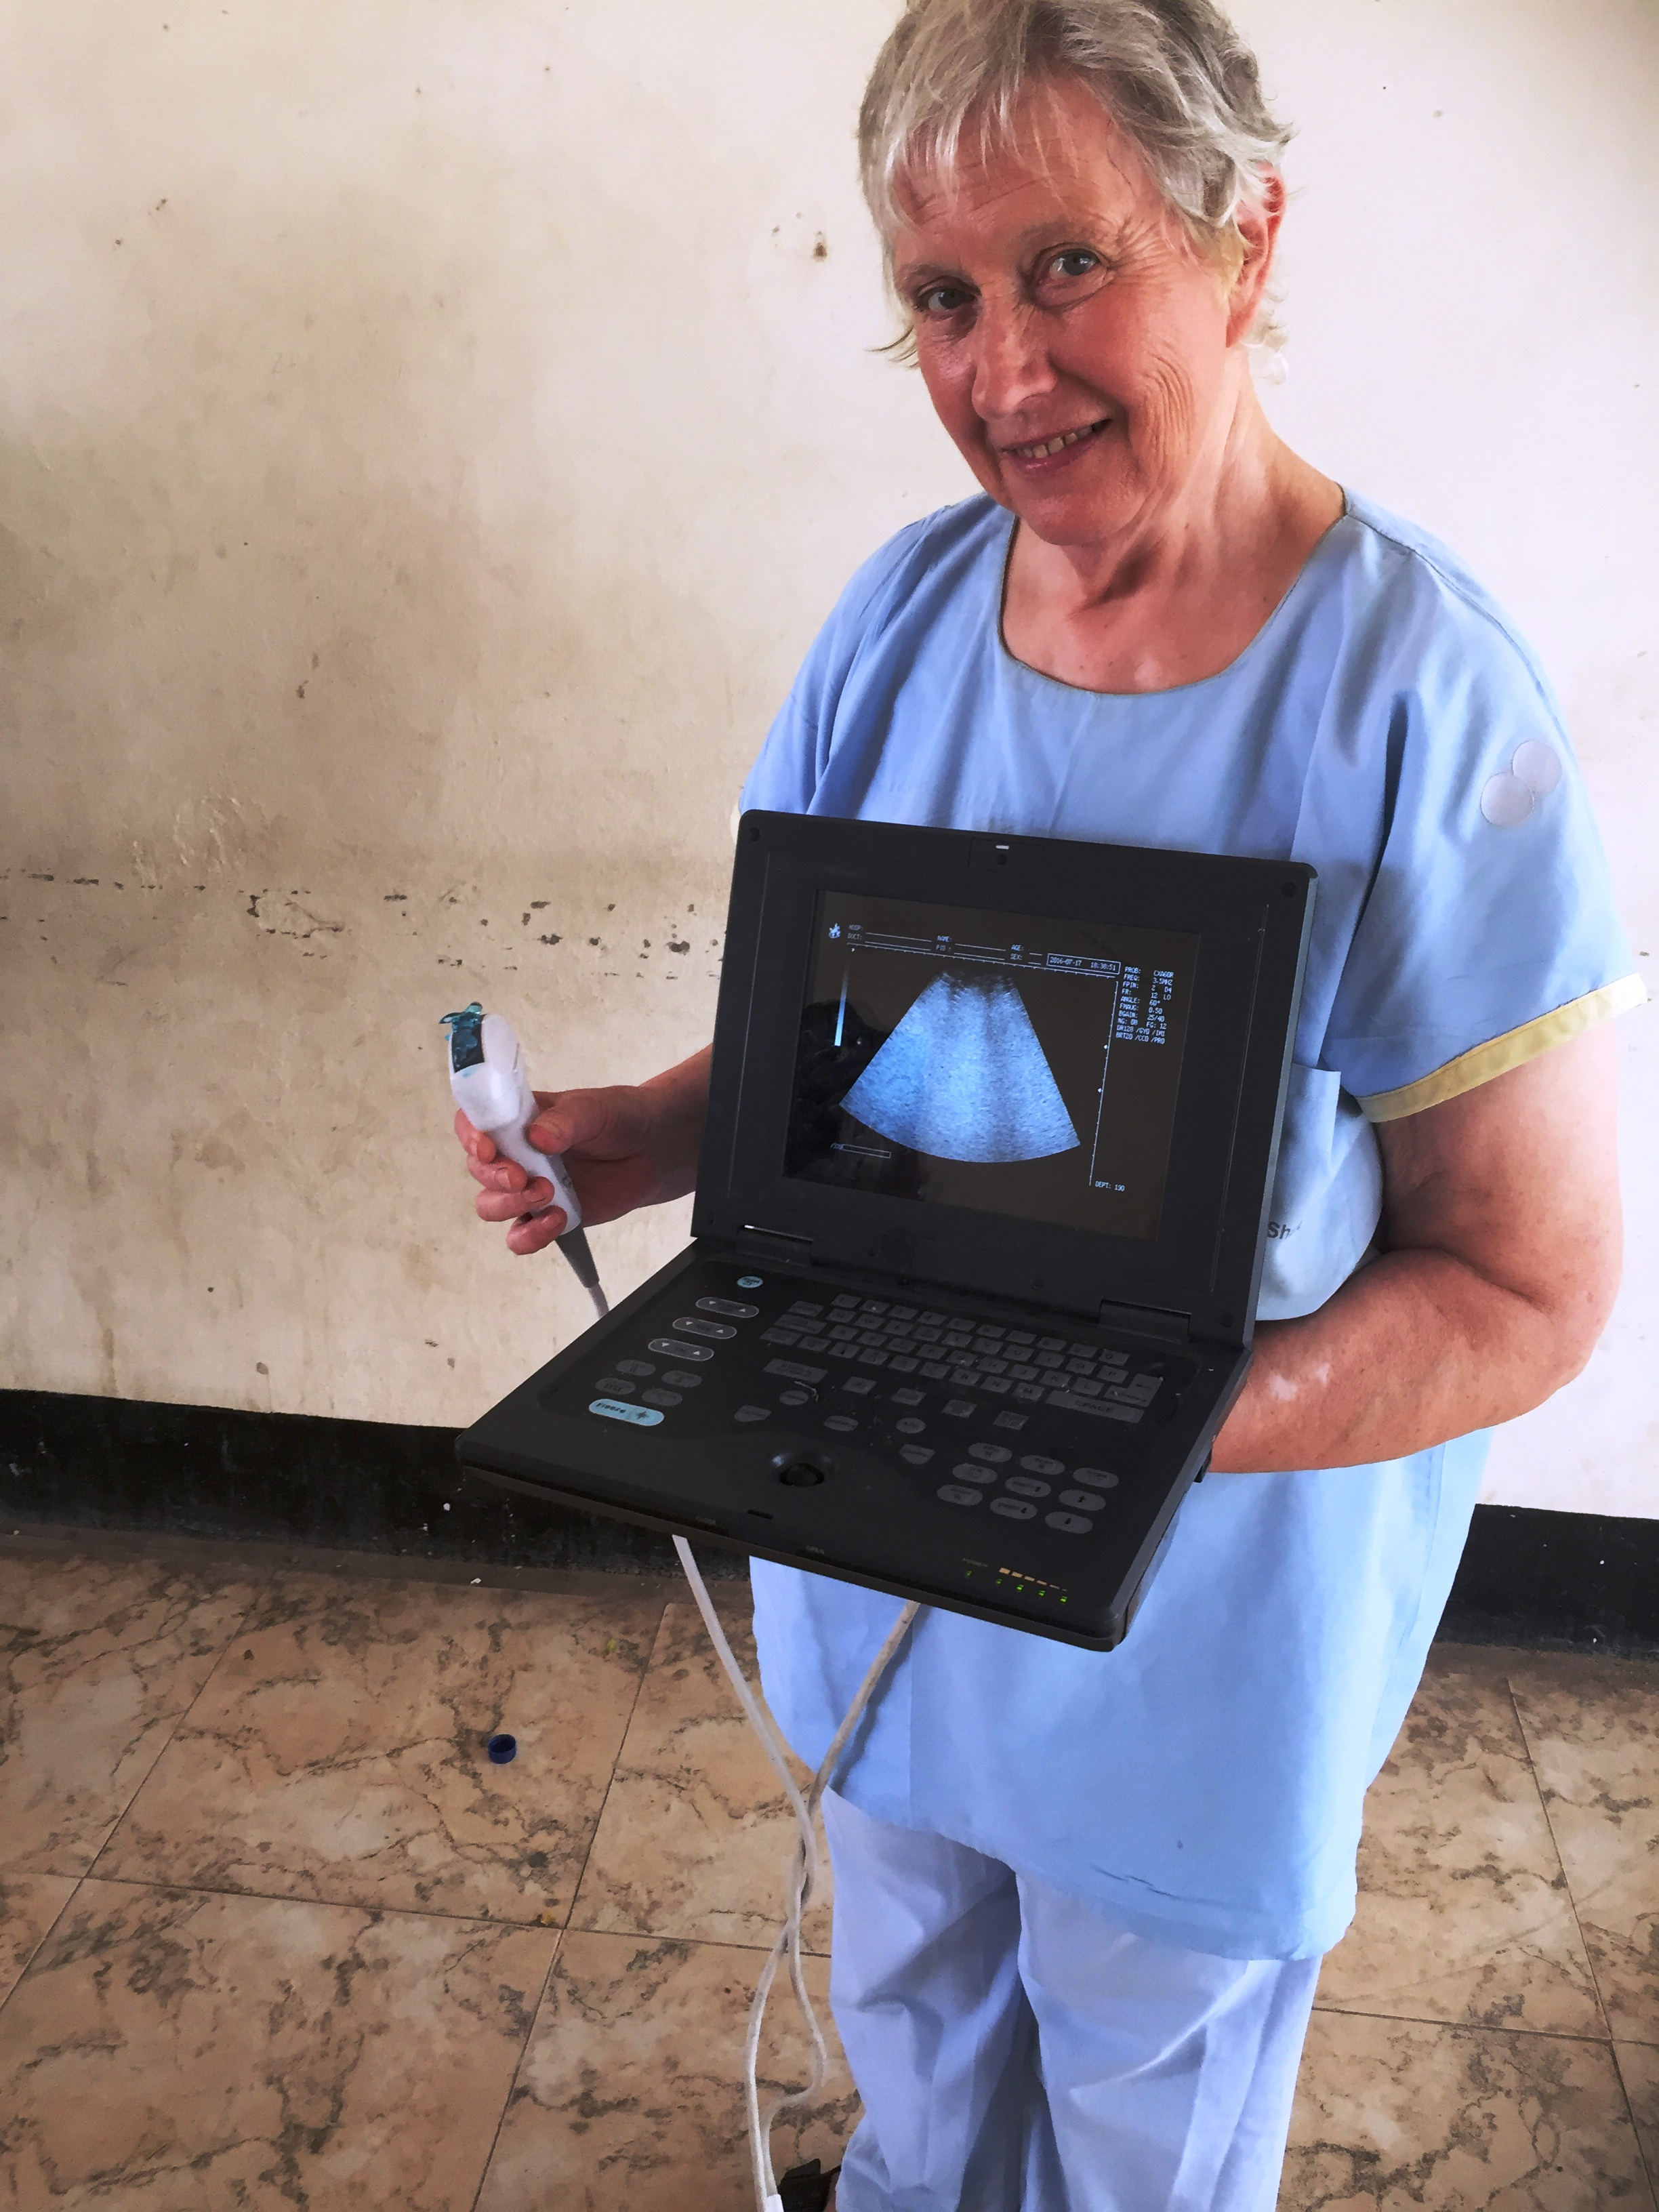 Dr. Margaret holds a portable ultrasound machine that was purchased with funds raised by the Can-Go Afar Foundation